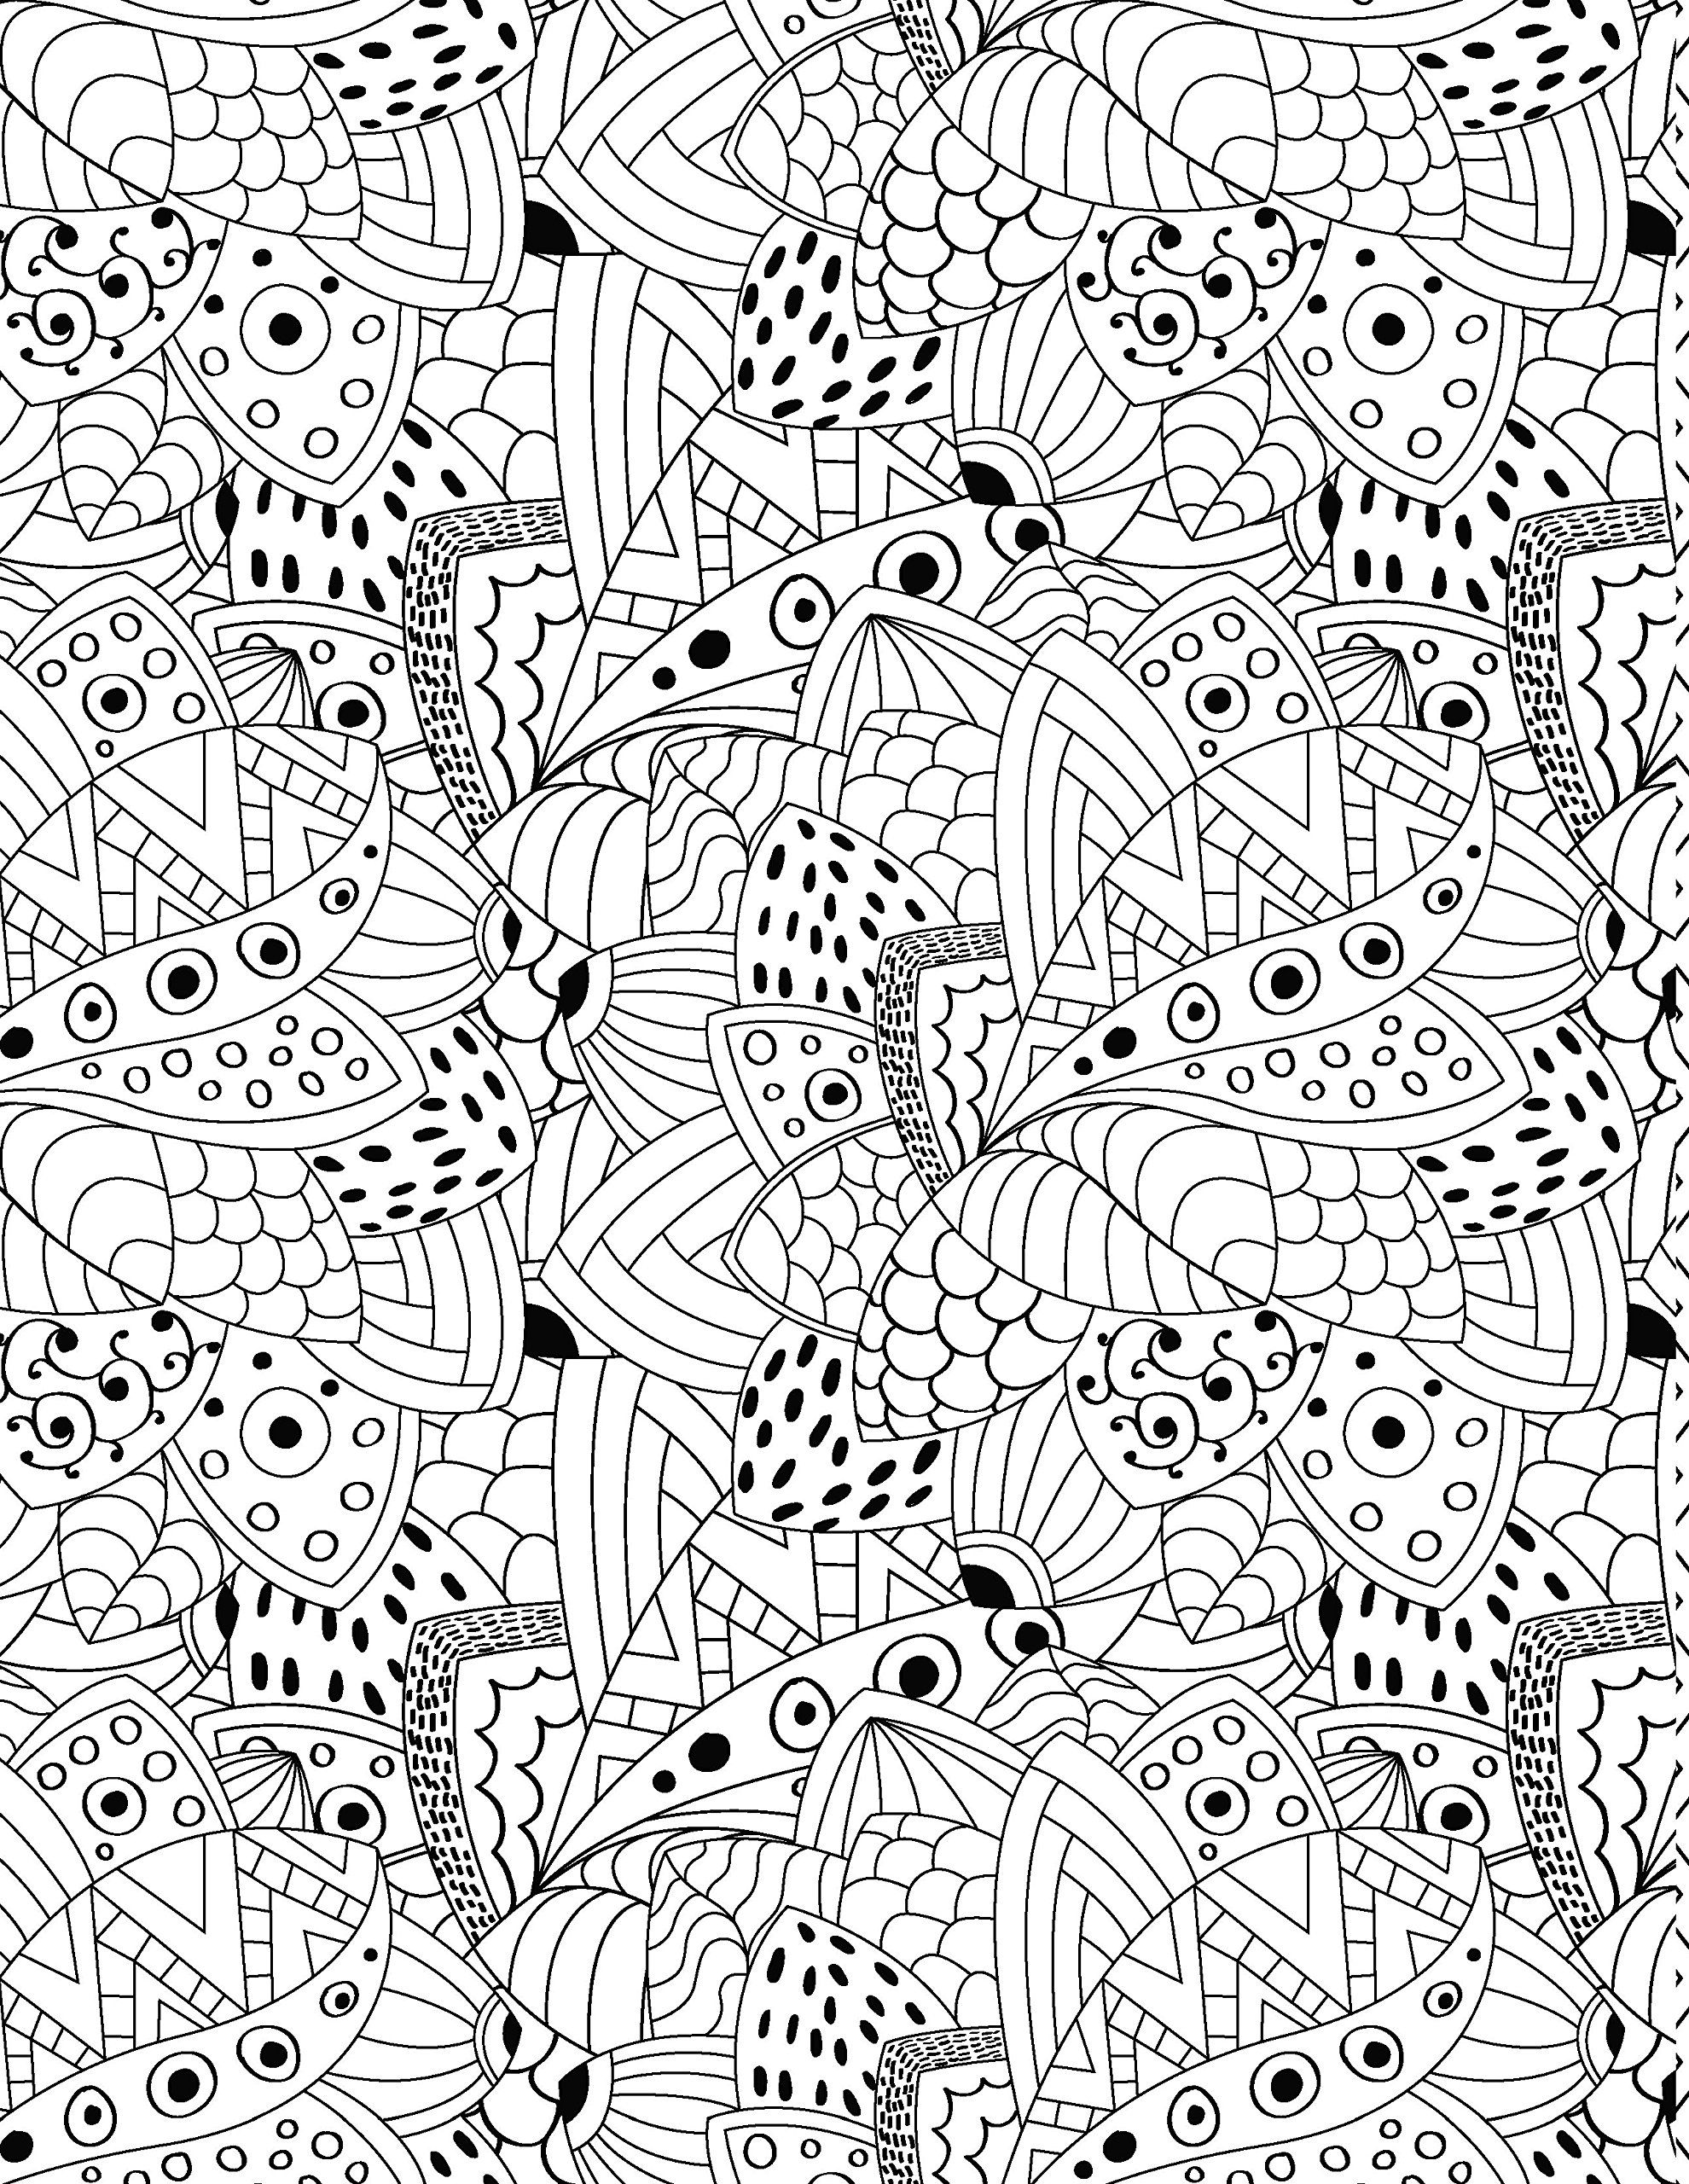 Dazzling Patterns A Gorgeous Coloring Book With More Than 120 Illustrations To Complete Just Add Coloring Books Pattern Coloring Pages Mandala Coloring Pages